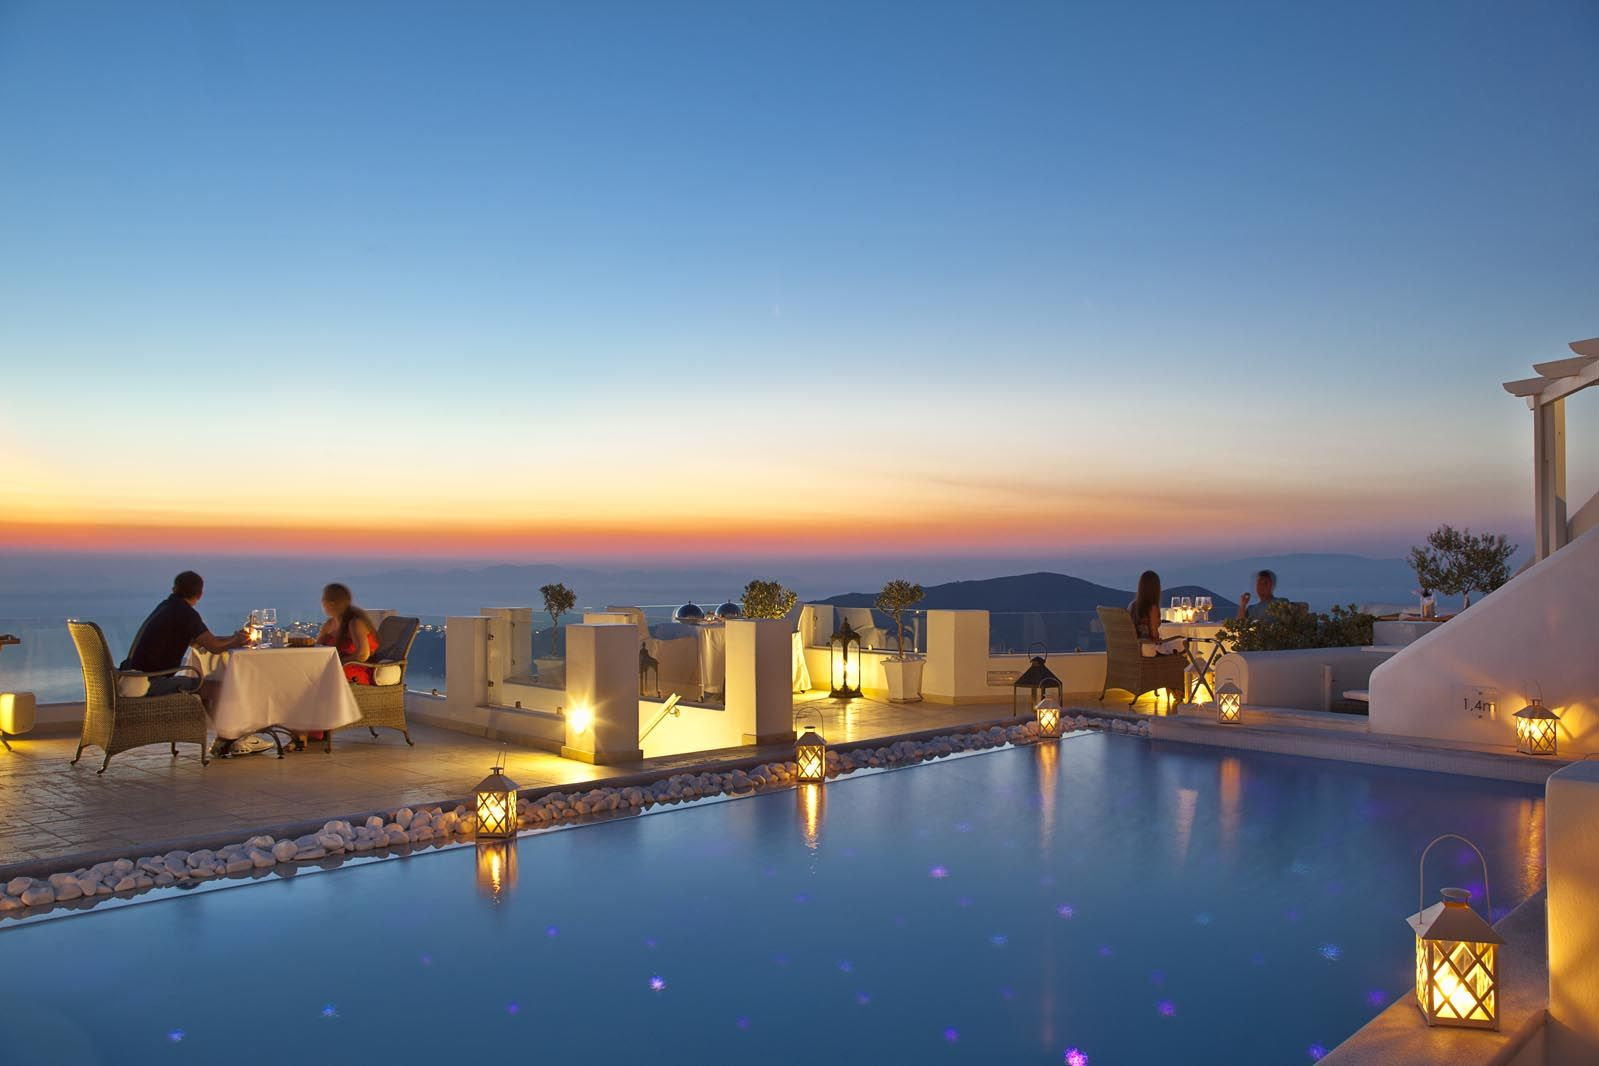 honeymoon dining with a view at above blue suites santorini greece europe honeymoon. Black Bedroom Furniture Sets. Home Design Ideas